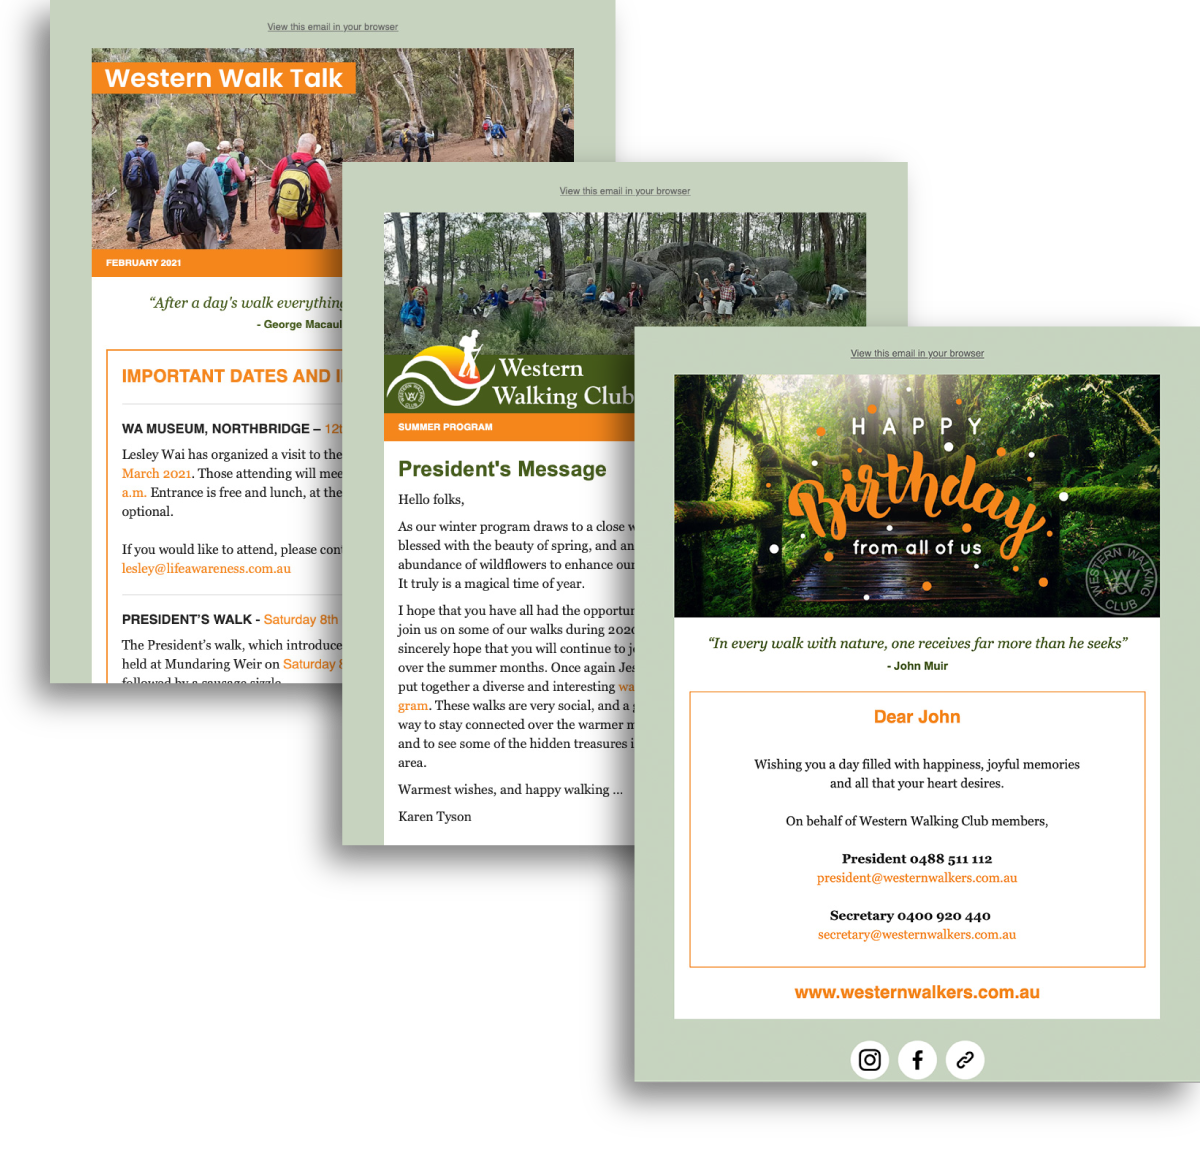 Western Walking Club Email Campaign Templates designed by accurate expressions